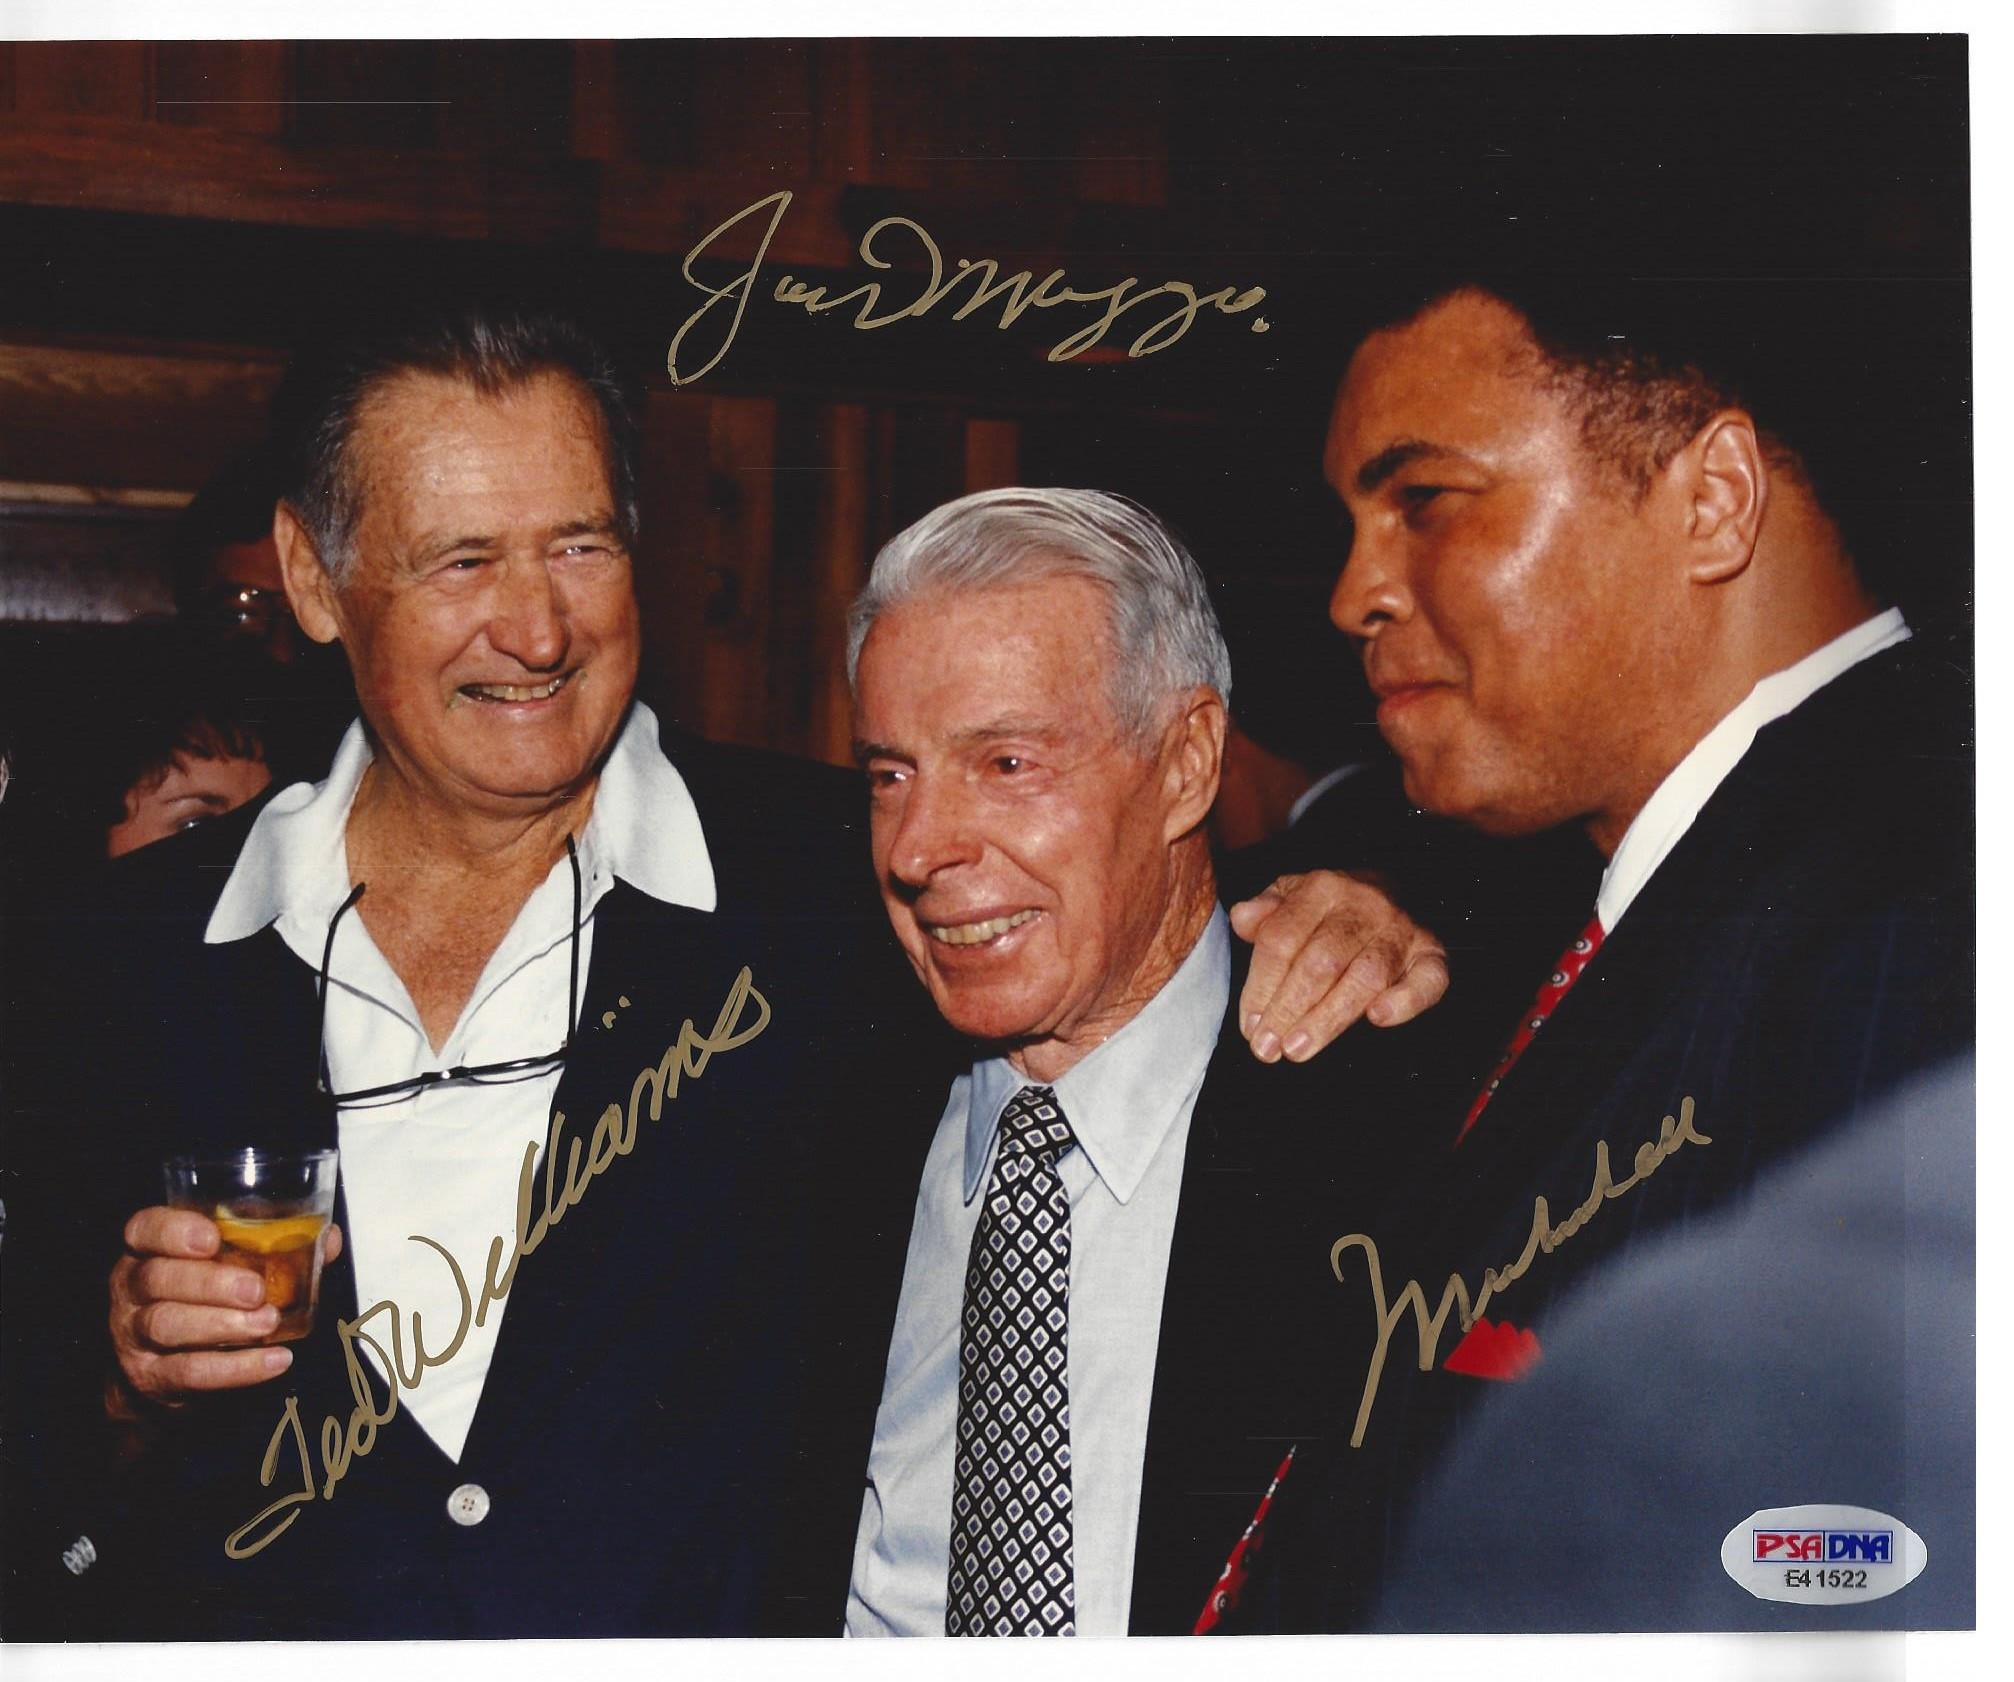 8x10 of three Legends, Joe DiMaggio, Ted Williams and Muhammad Ali signed by all three